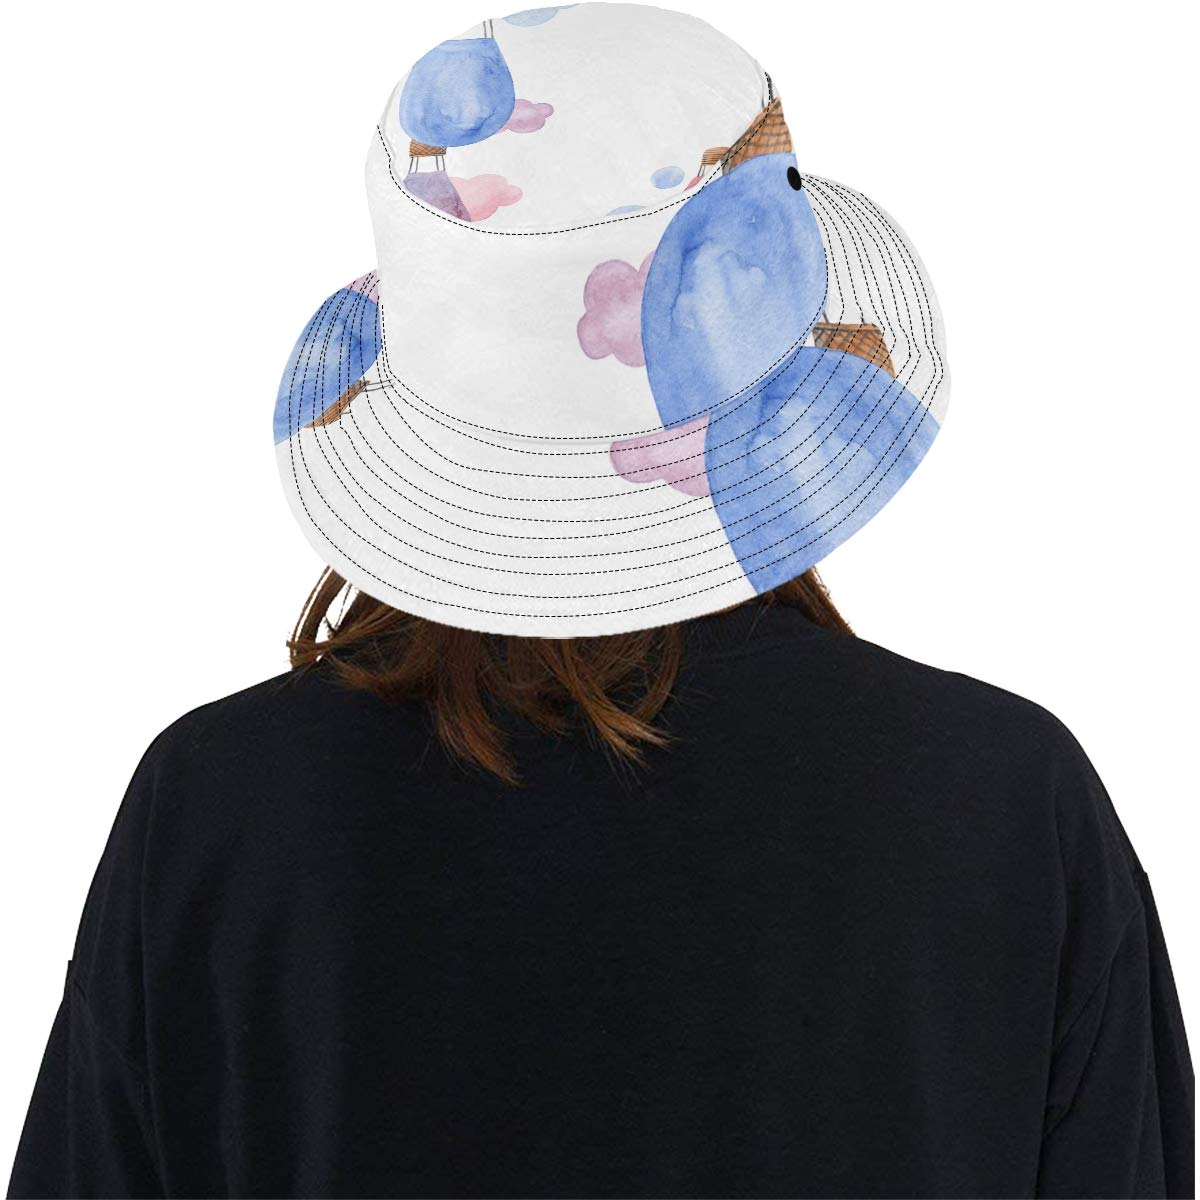 Cartoon Love Air Ballon New Summer Unisex Cotton Fashion Fishing Sun Bucket Hats for Kid Women and Men with Customize Top Packable Fisherman Cap for Outdoor Travel Teens